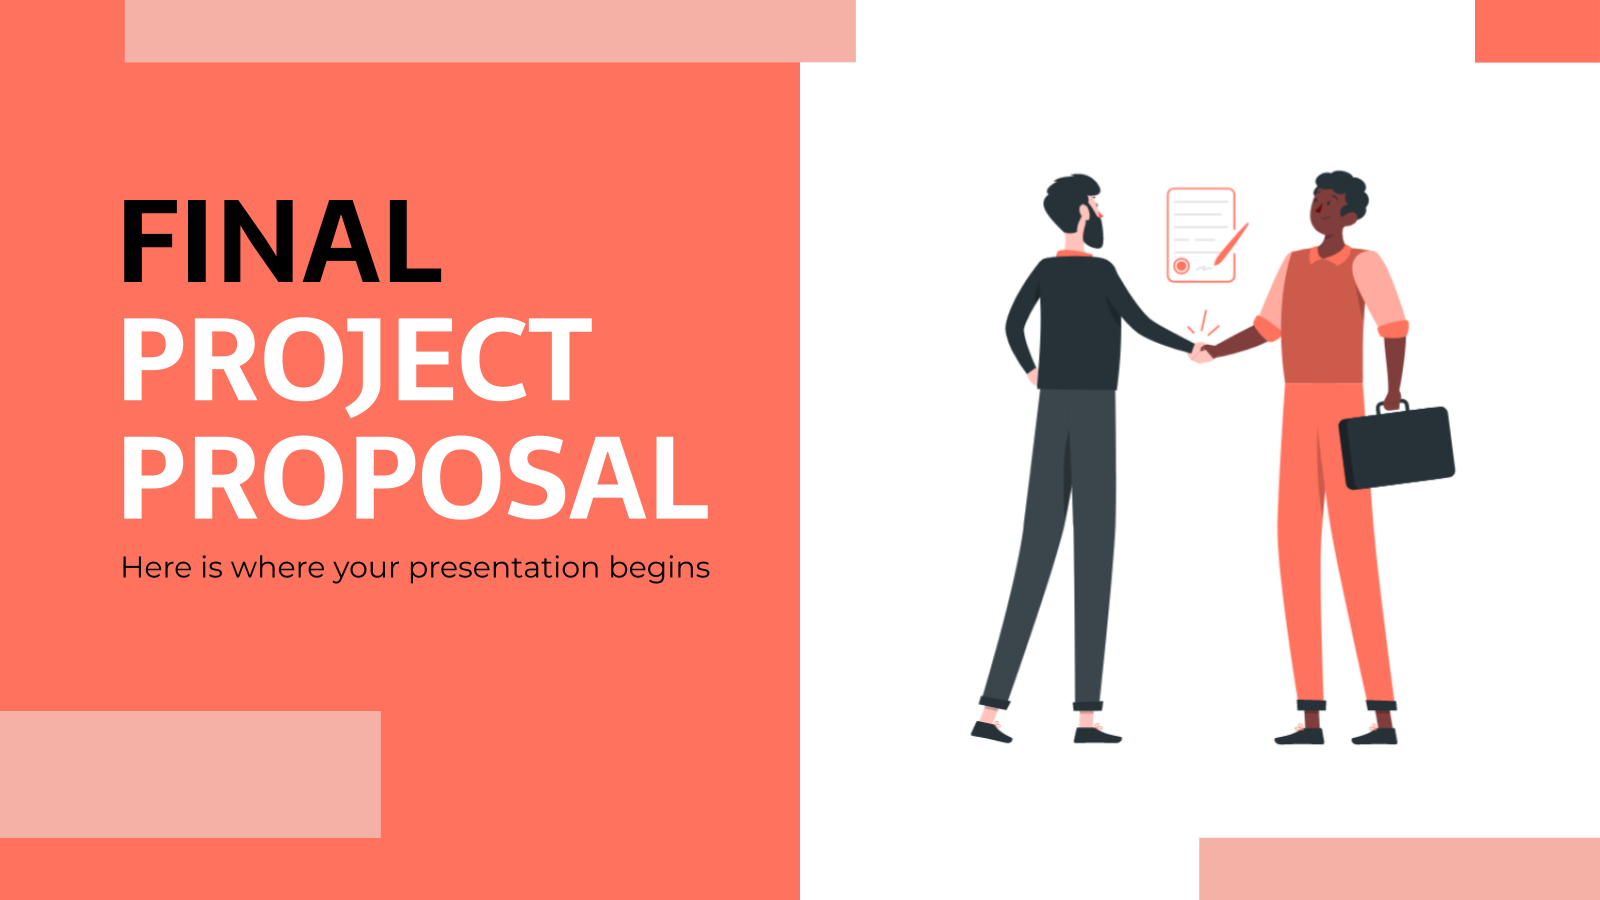 Final Project Proposal presentation template